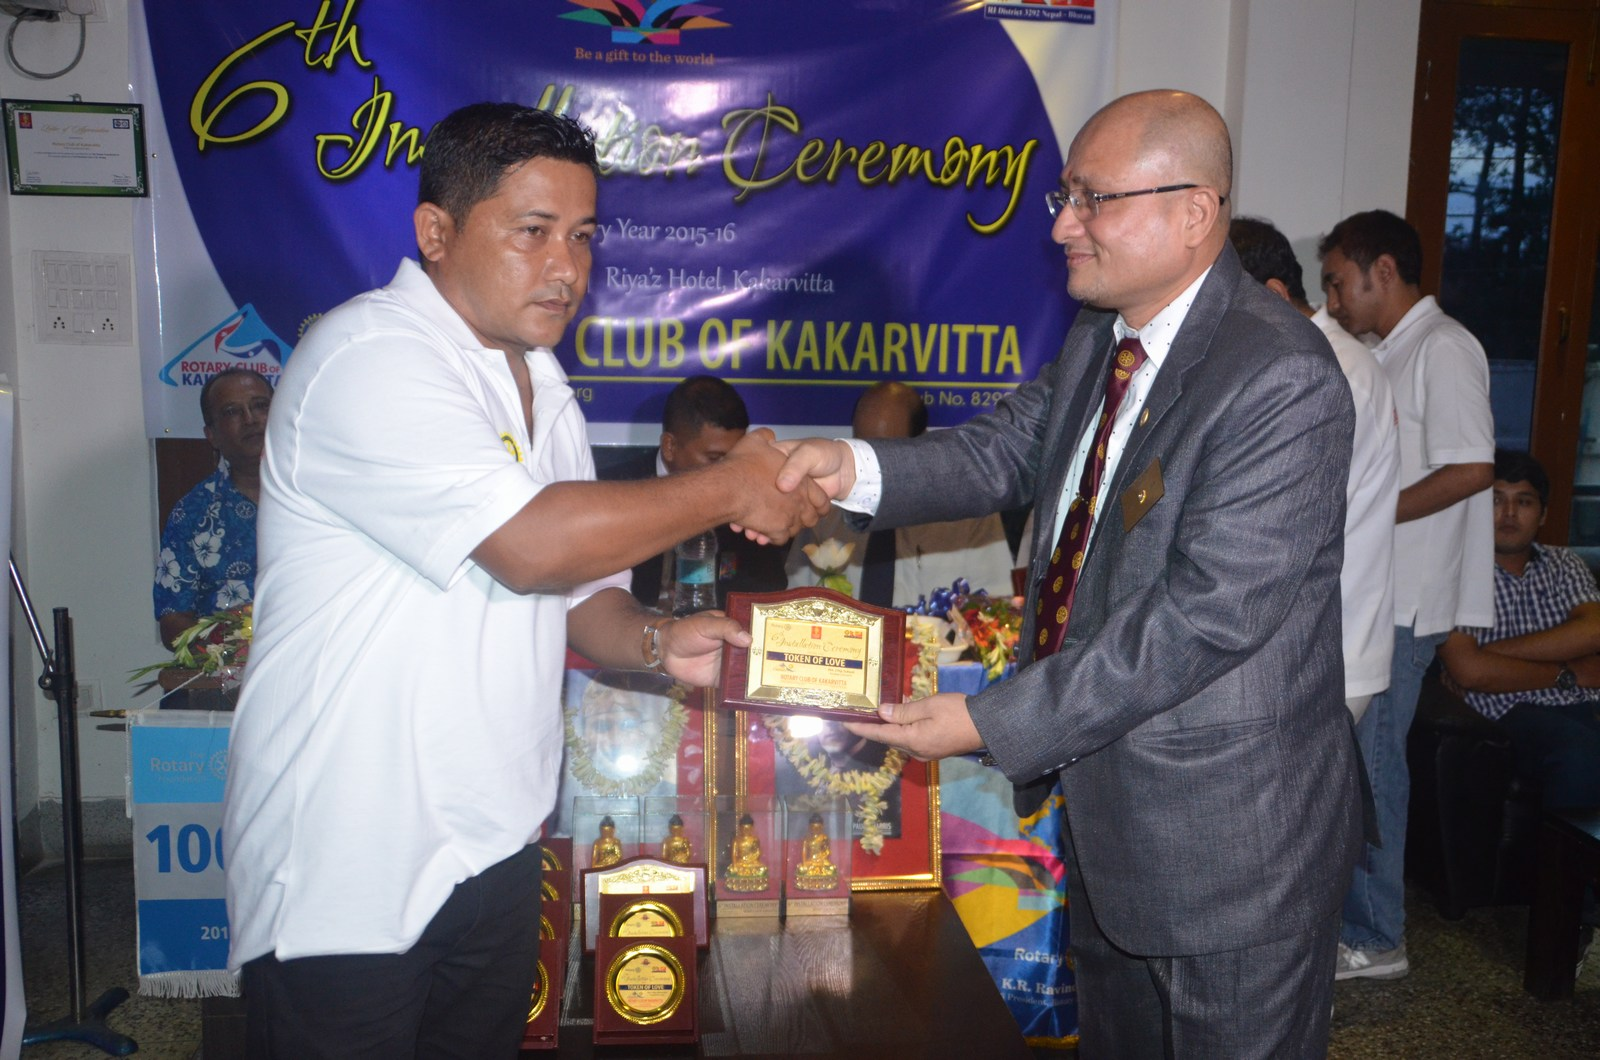 6th Installation Ceremony 2015 16 Rotary Club Of Kakarvitta 23